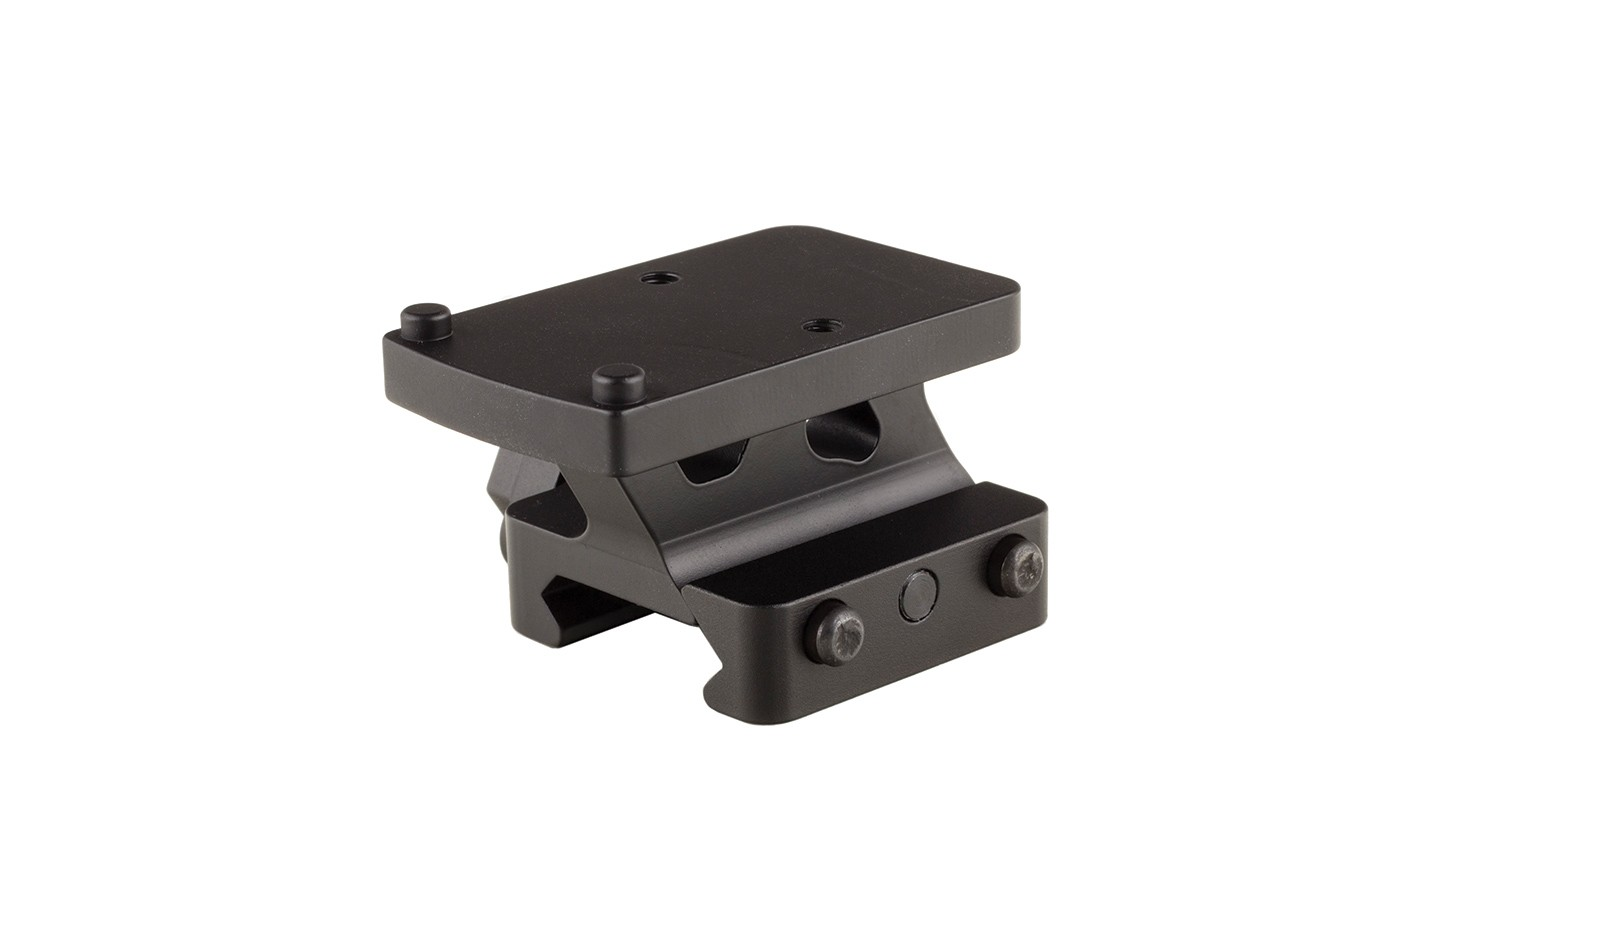 RMR®/SRO™ Quick Release Full Co-Witness Mount